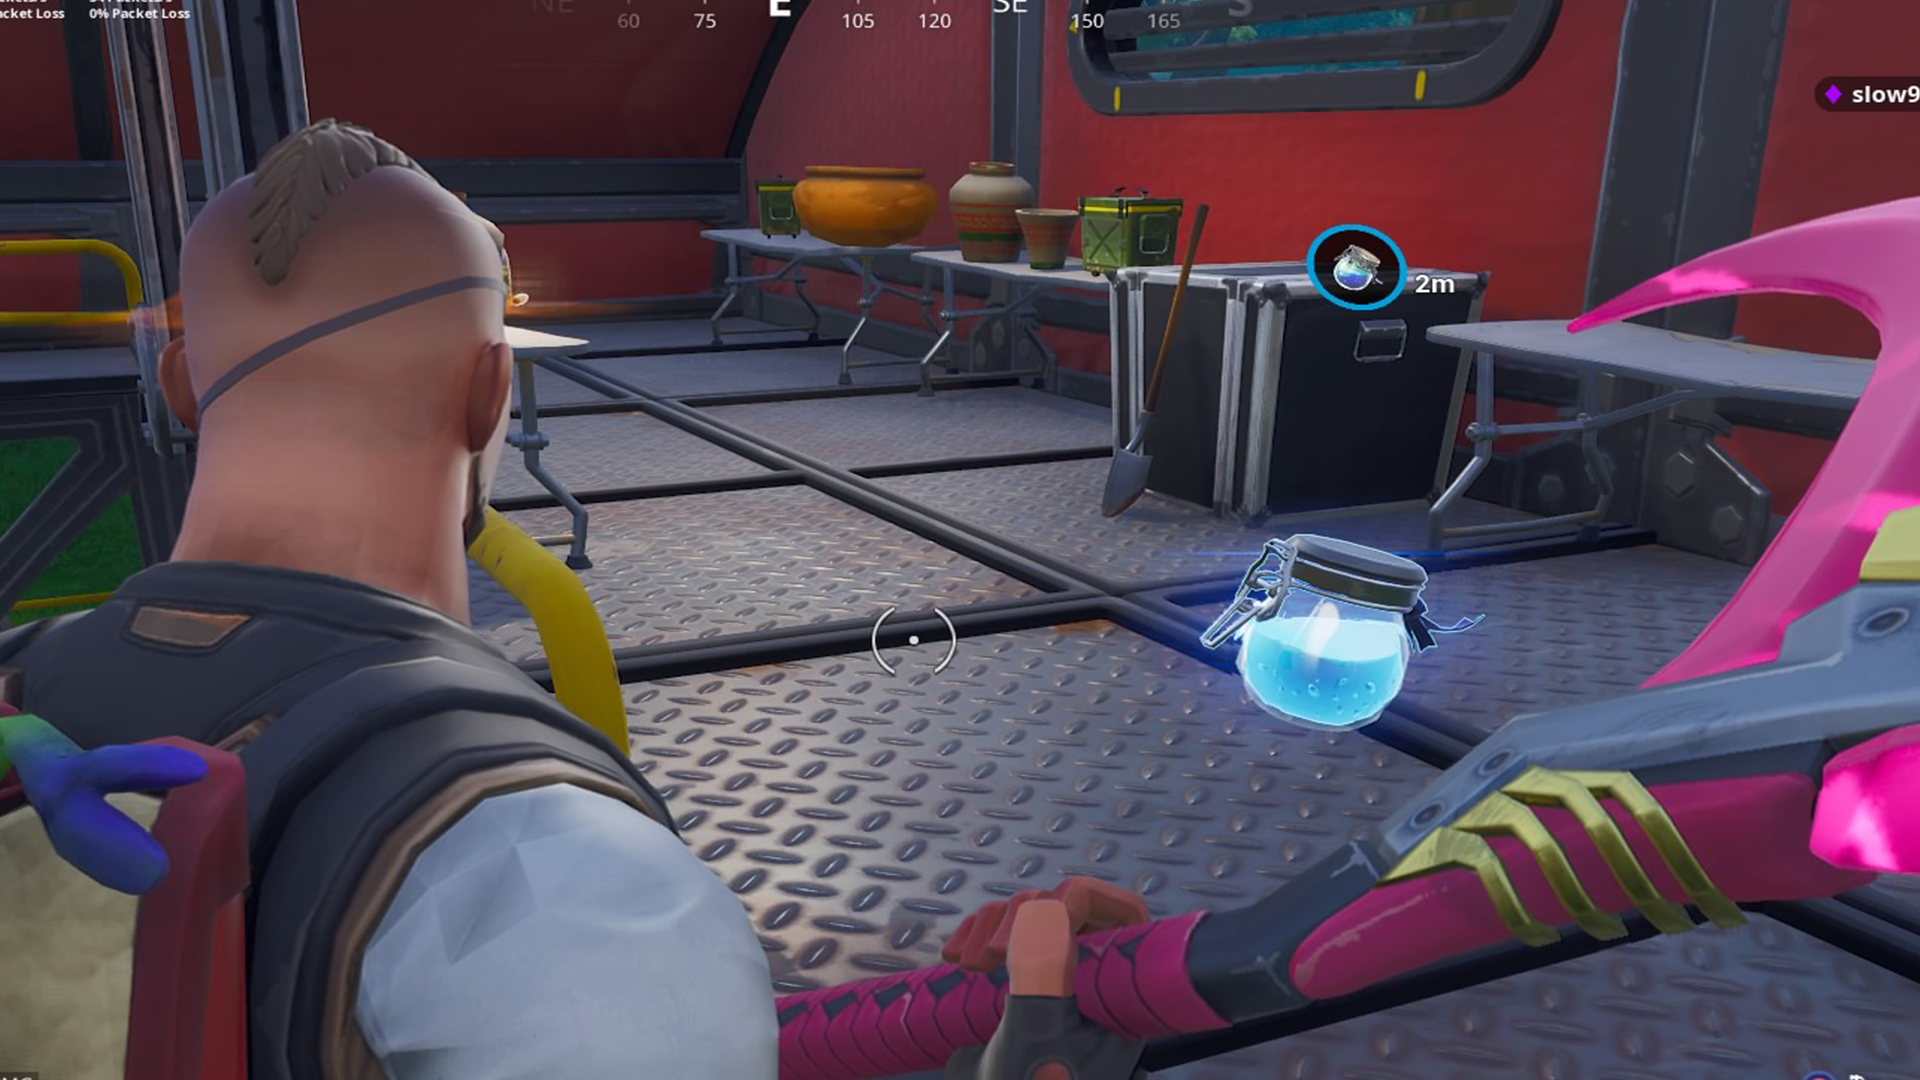 There's a Fortnite ping system now just like Apex Legends